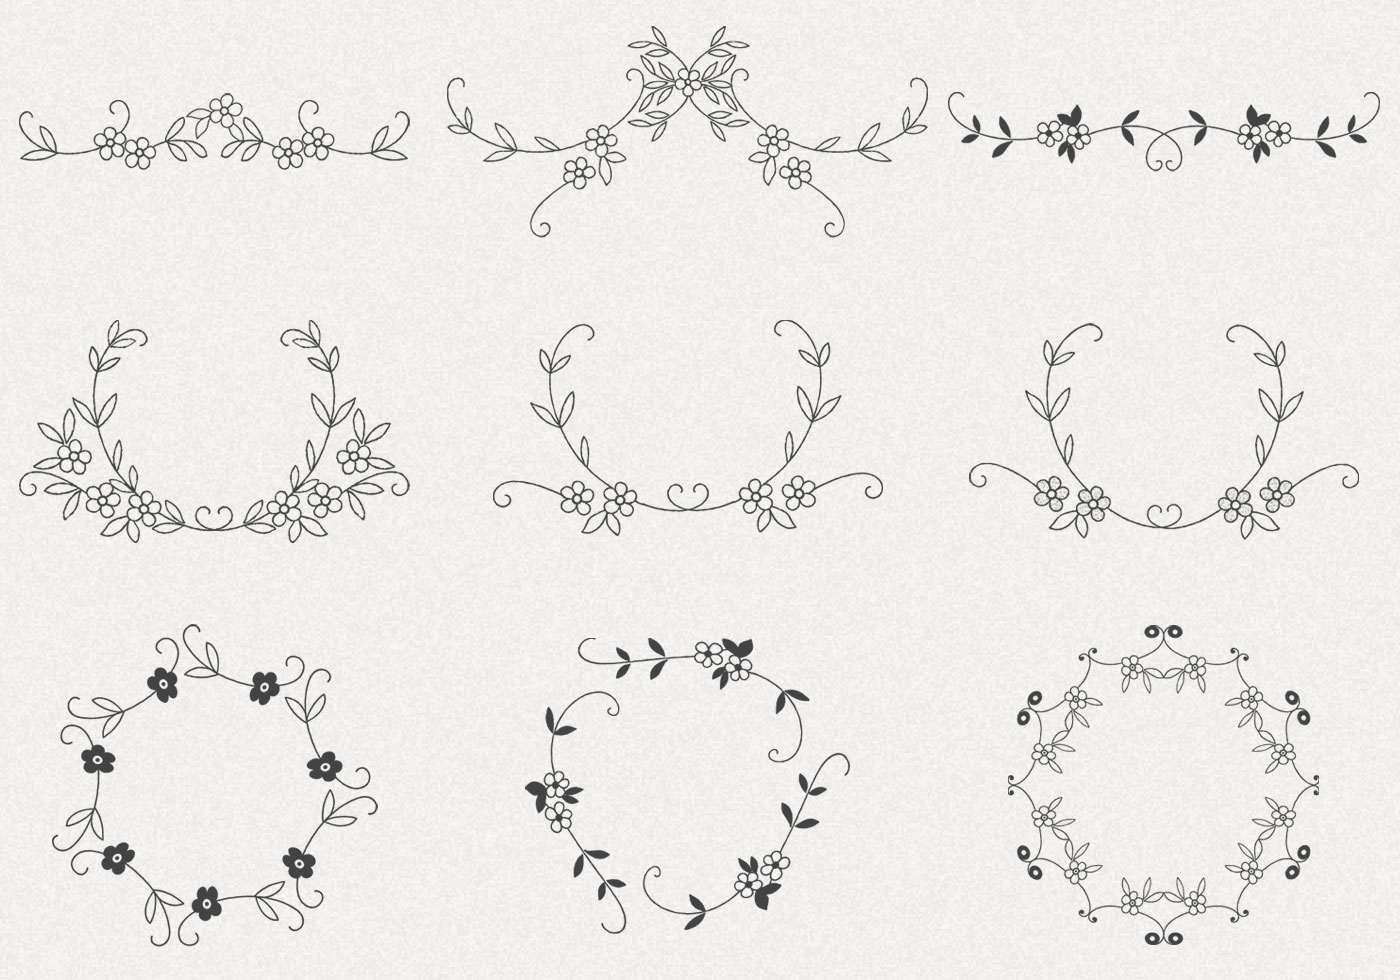 Hand Drawn Flower Frame Brushes Pack Free Photoshop Brushes At